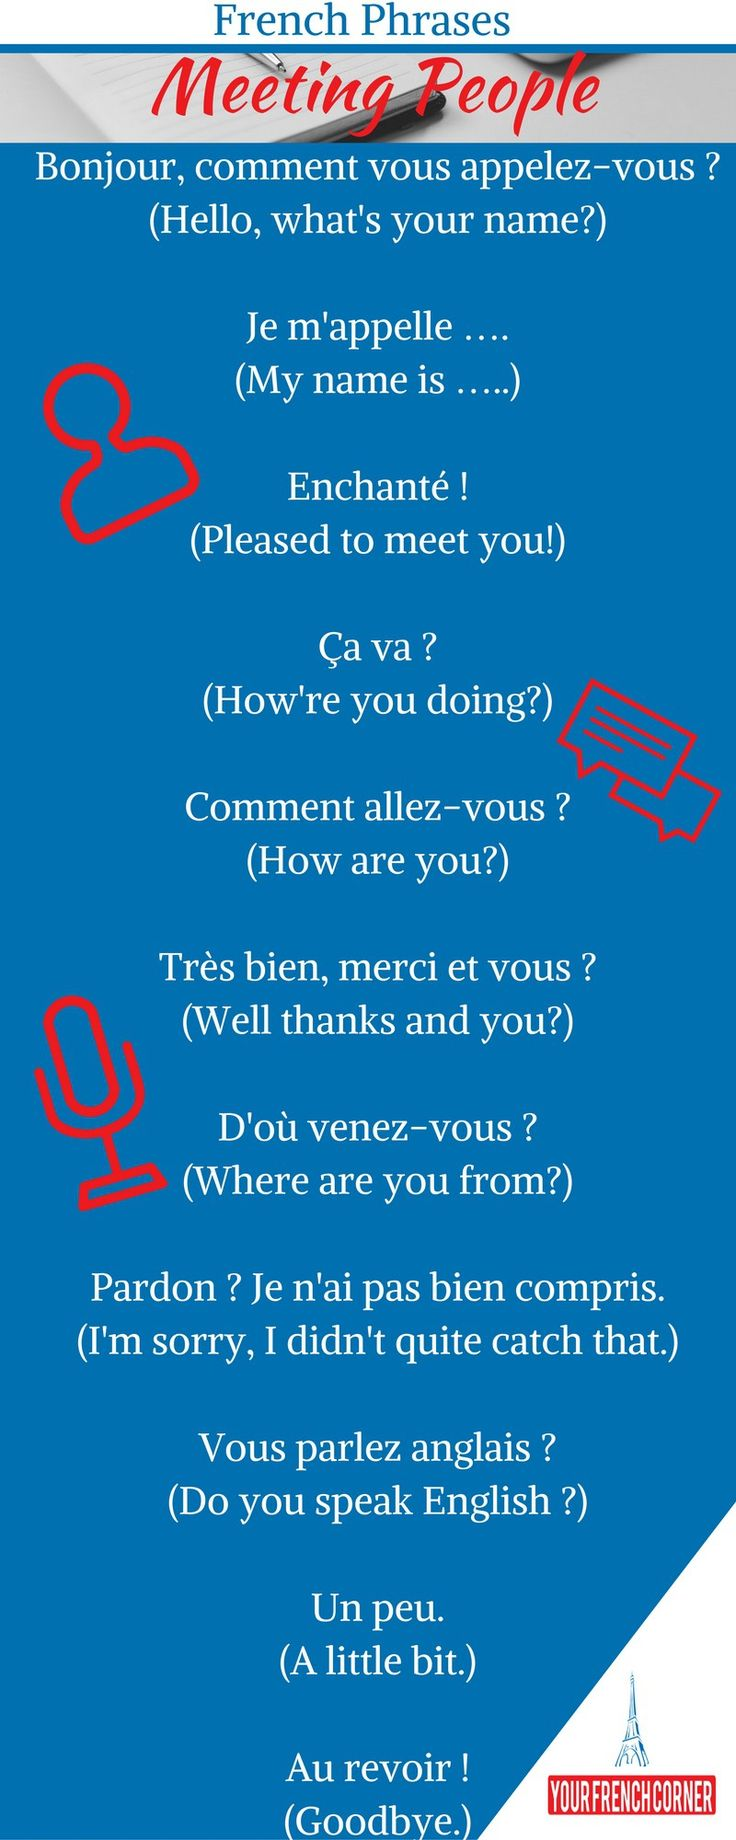 Learn French: The best basic French toolkit - YouTube